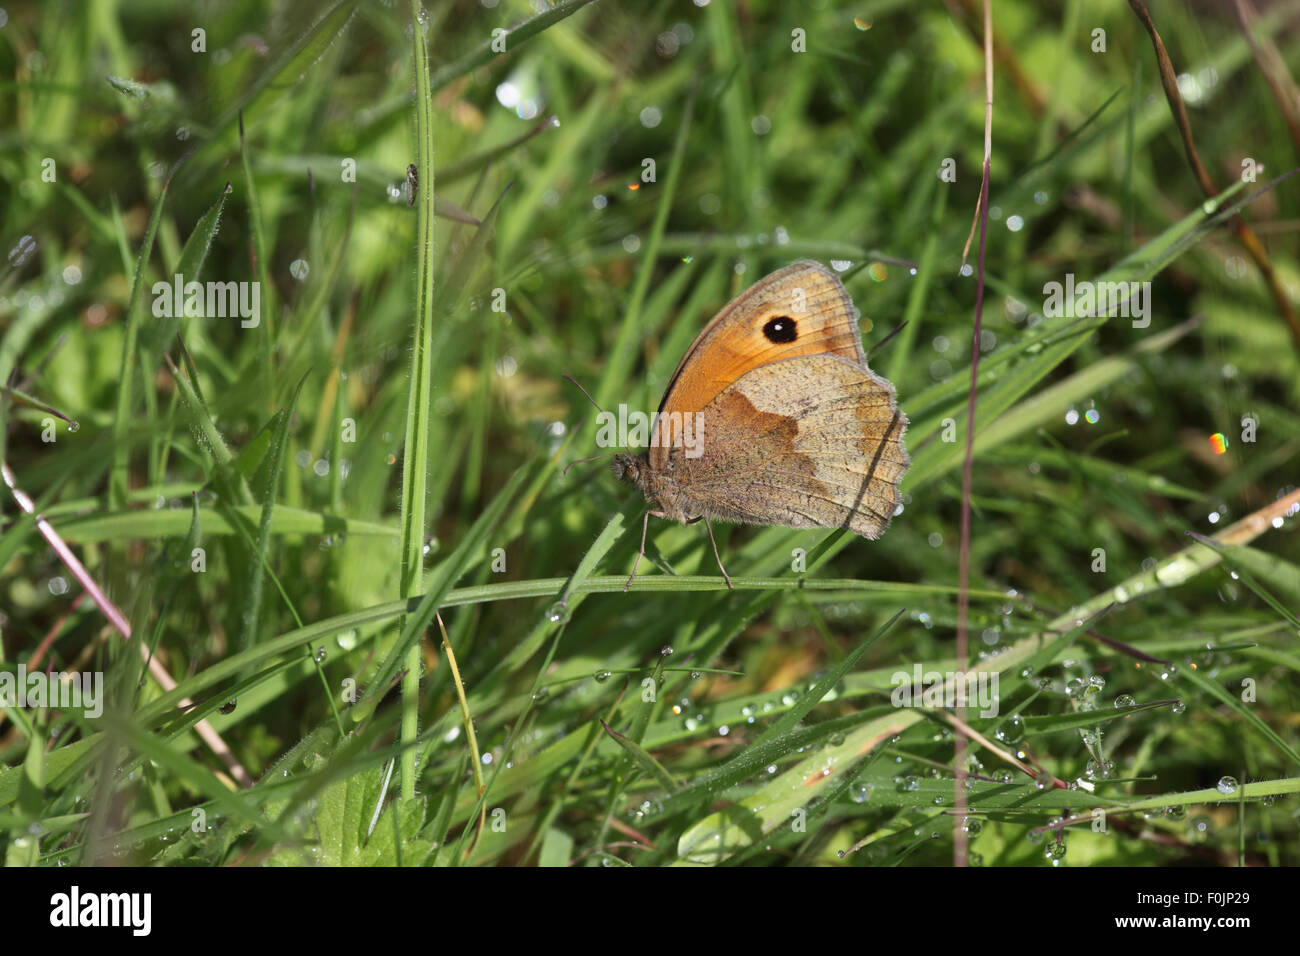 Meadow brown (Maniola jurtina) female sheltering from rain in long grass - Stock Image